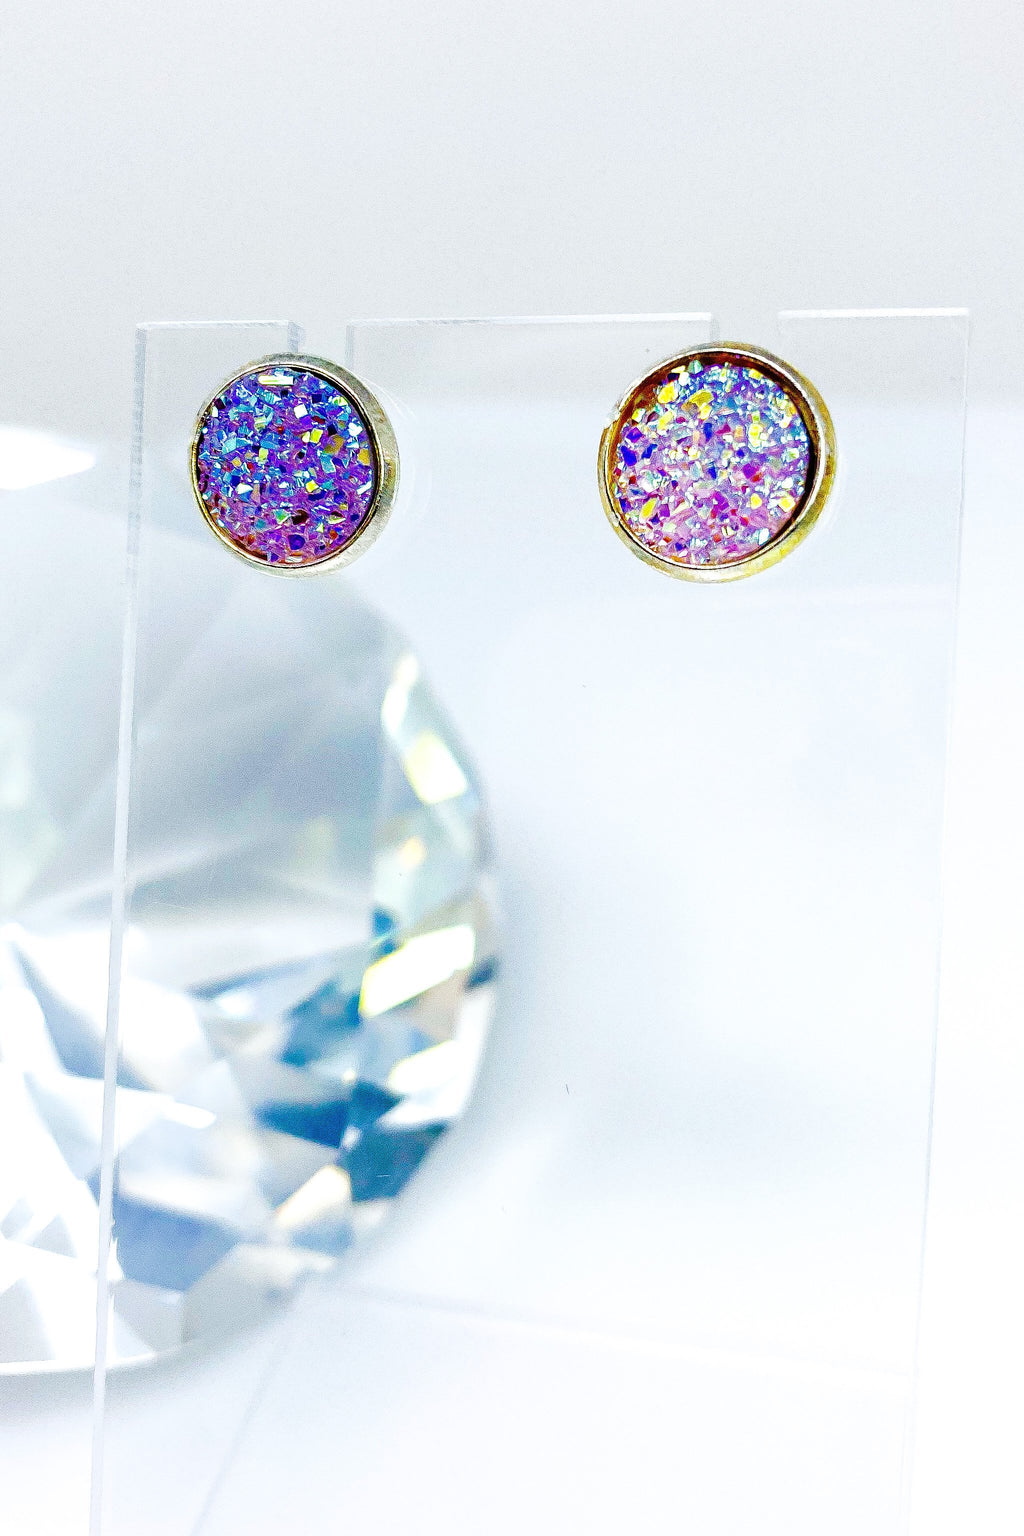 Celestial Studs - EarringEverything.com - Studs - earrings - fashion - fashion_accessories